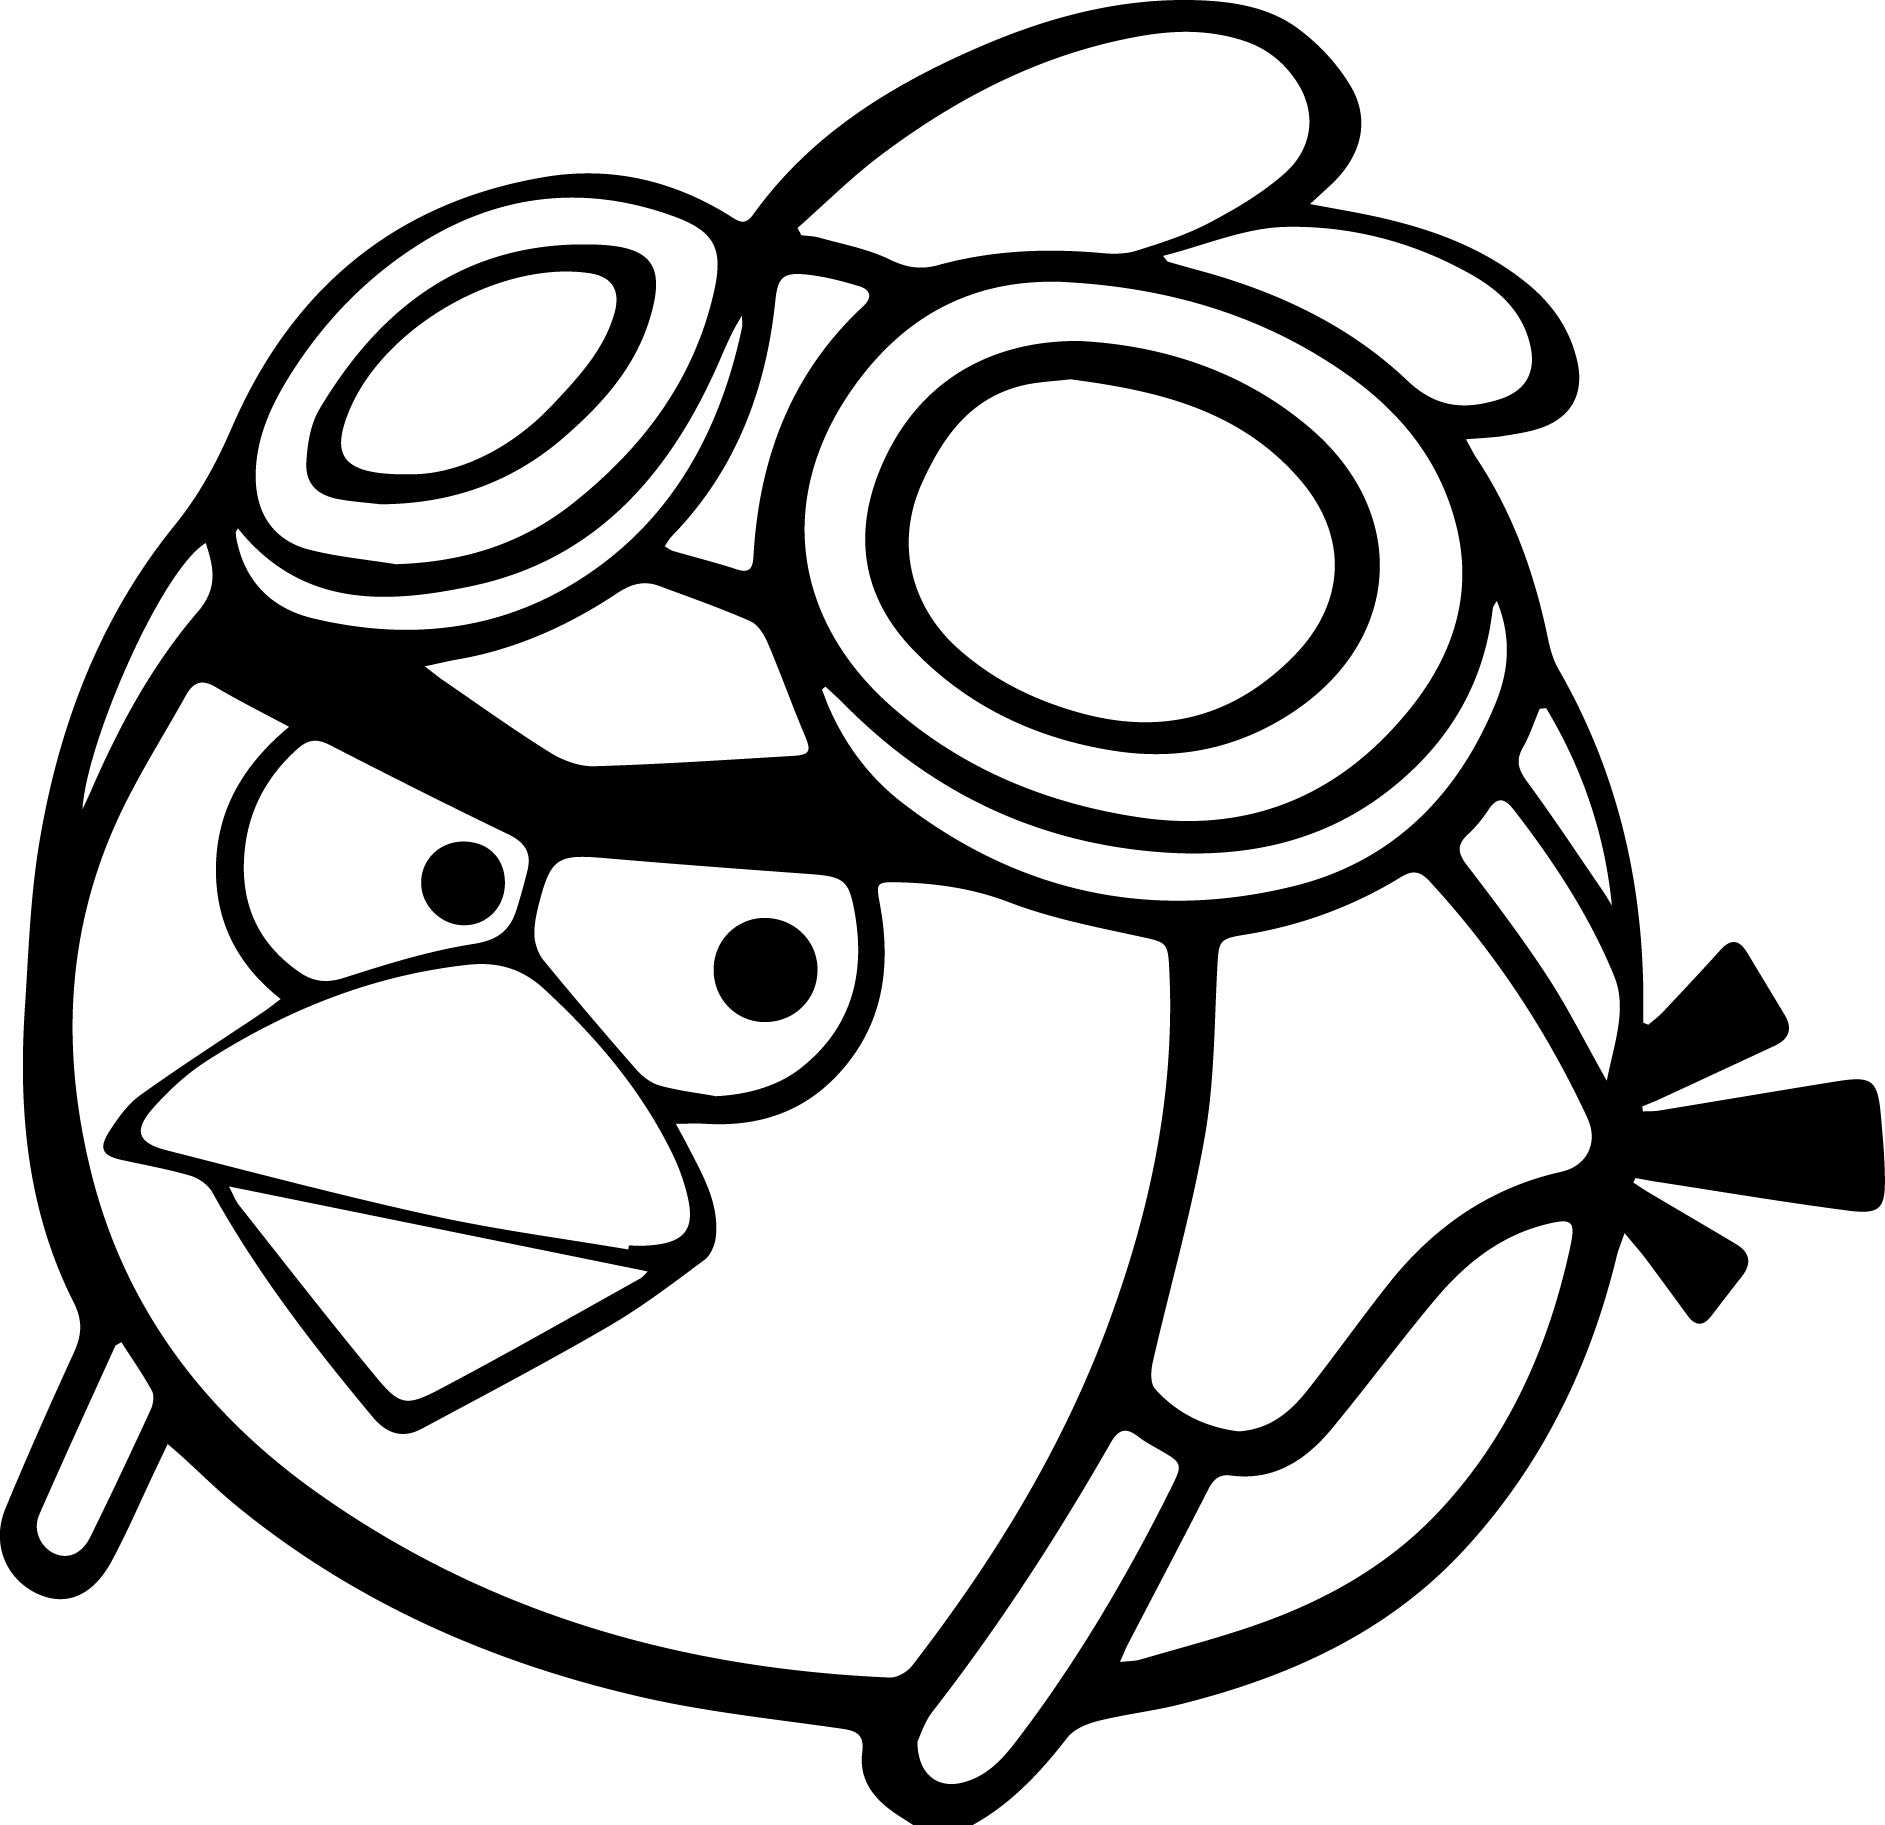 pilot angry birds coloring page - Angry Birds Coloring Page